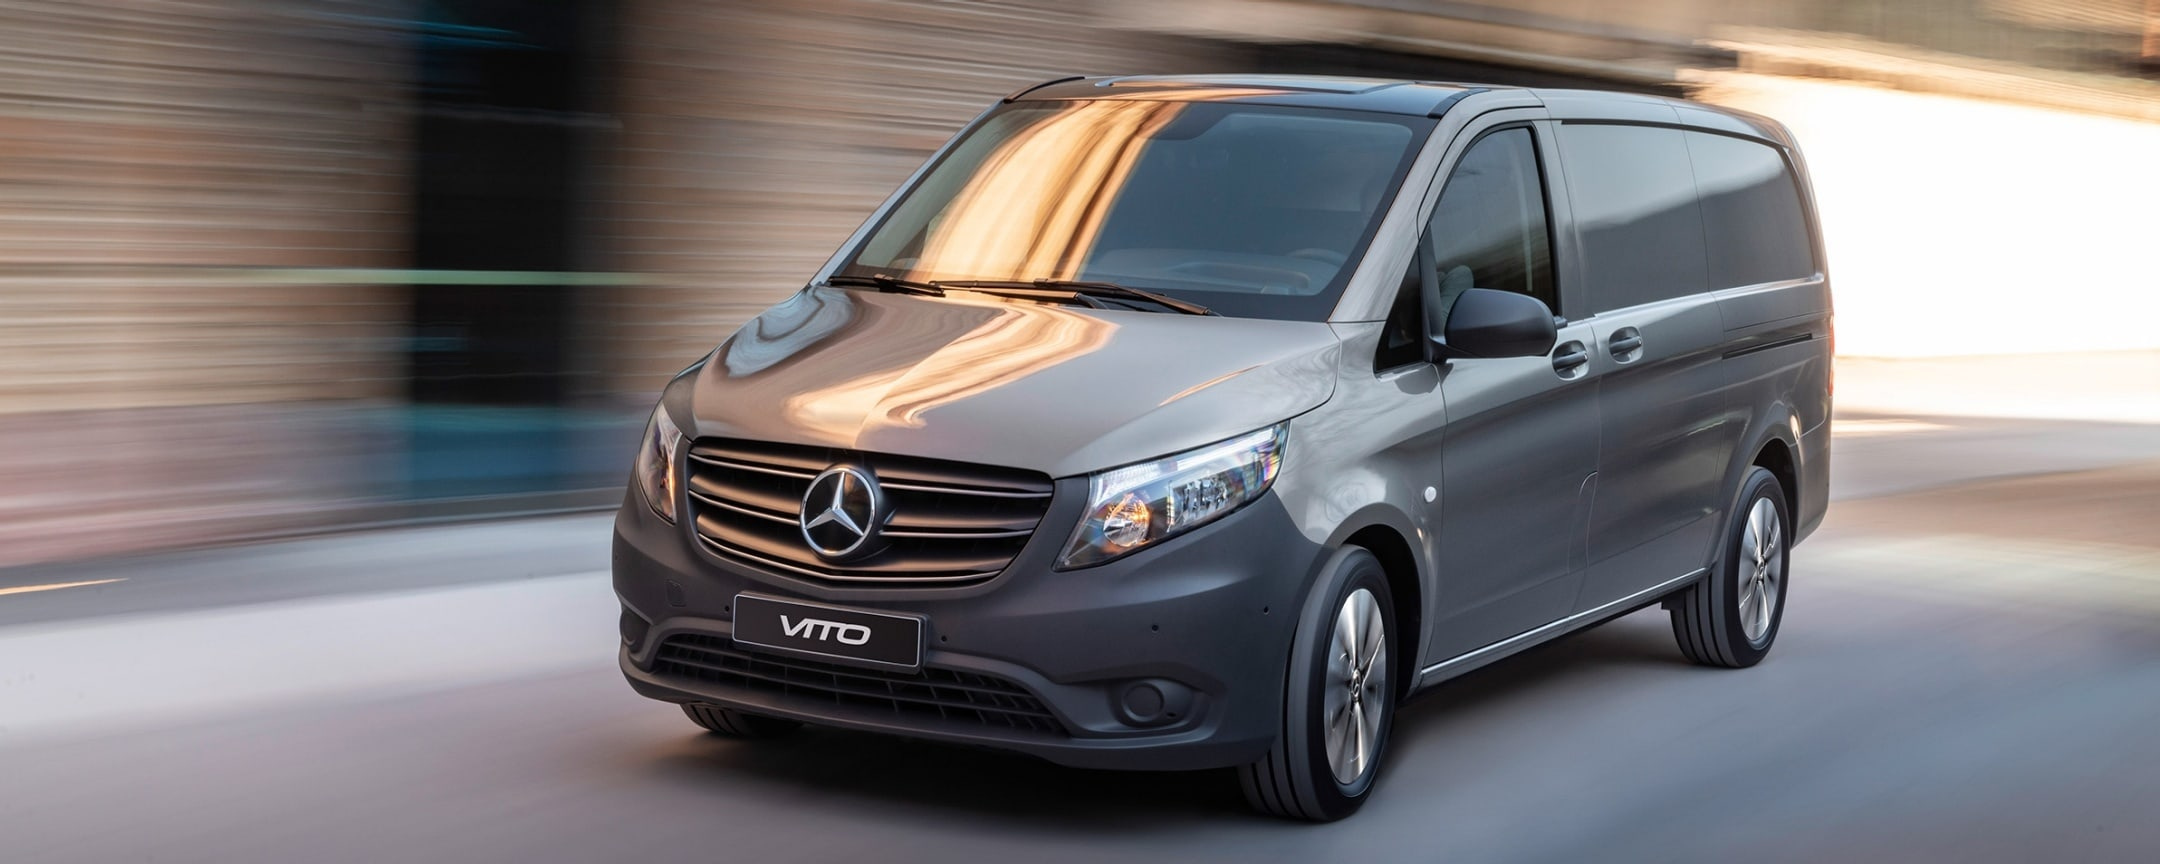 Mercedes-Benz, Vito panel van